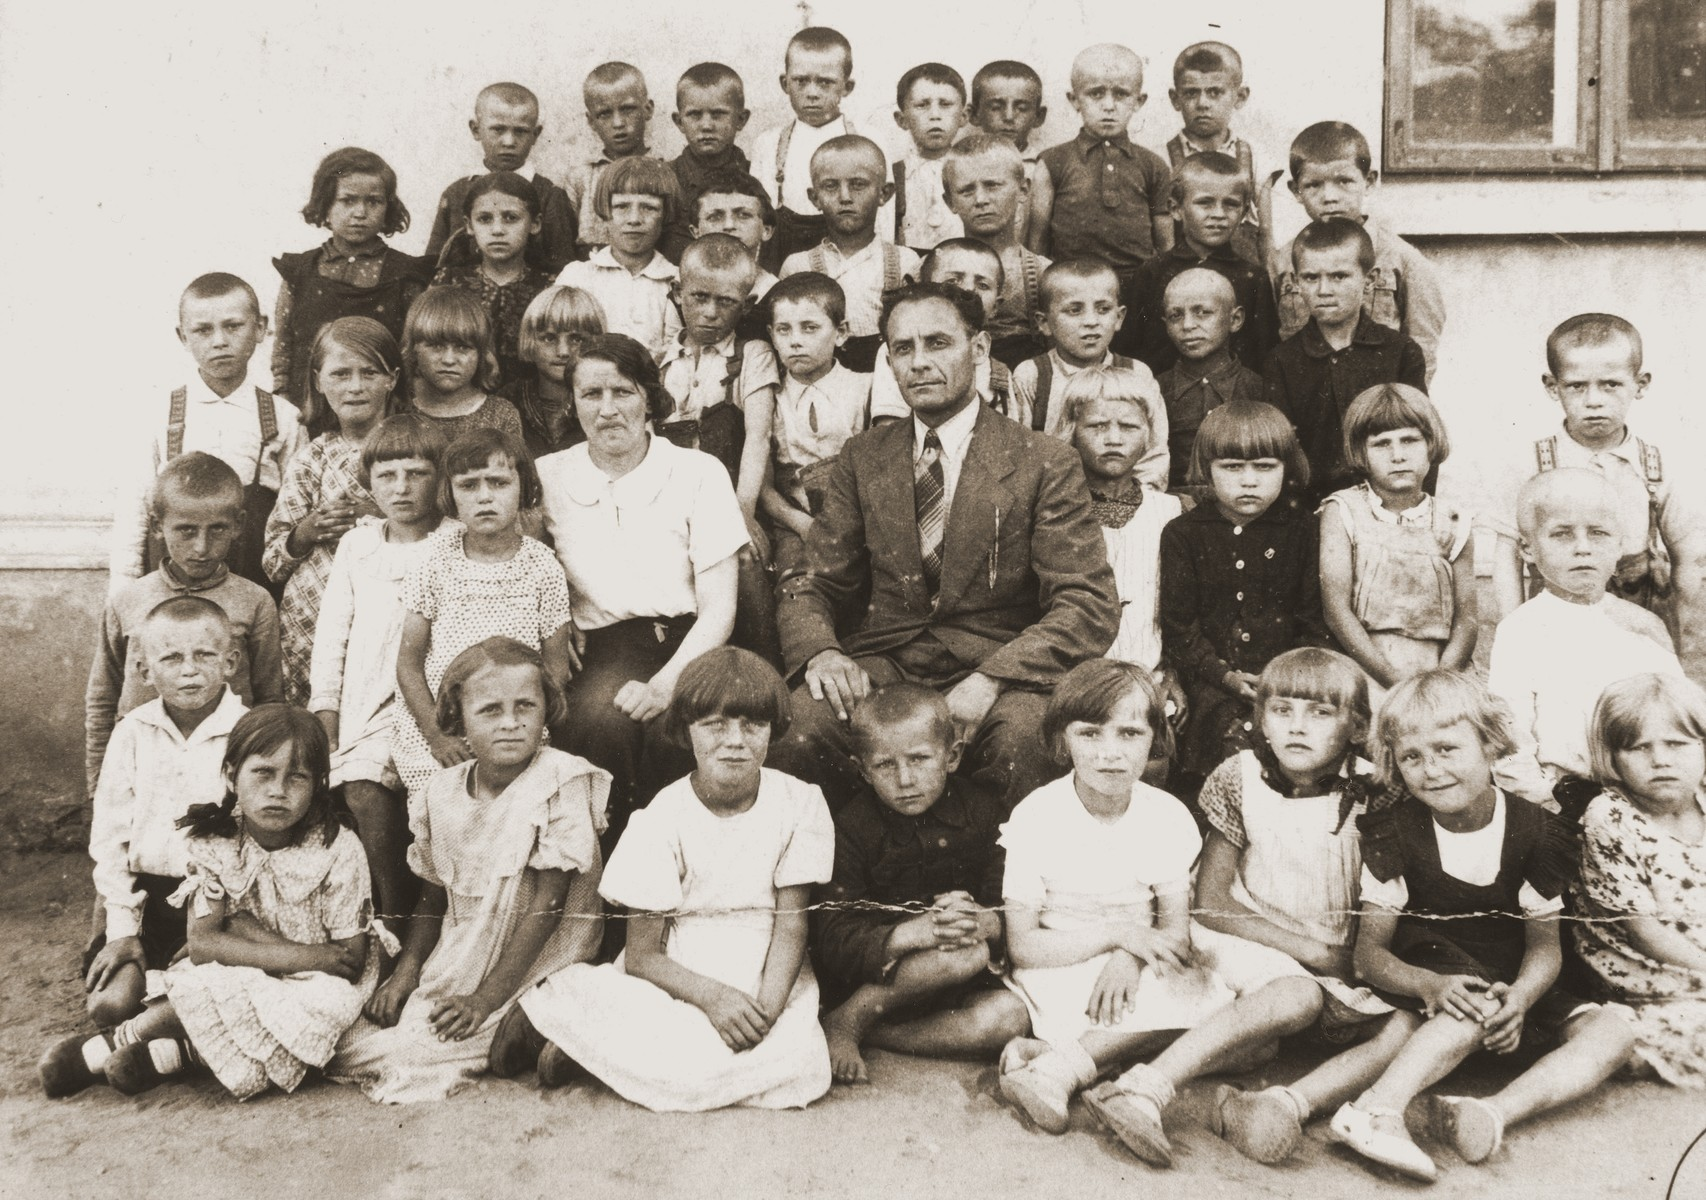 Class portrait of first grade students at a public school in Klobuck.    Abram Gelbart, the donor's husband, is pictured in the top row, second from the right.